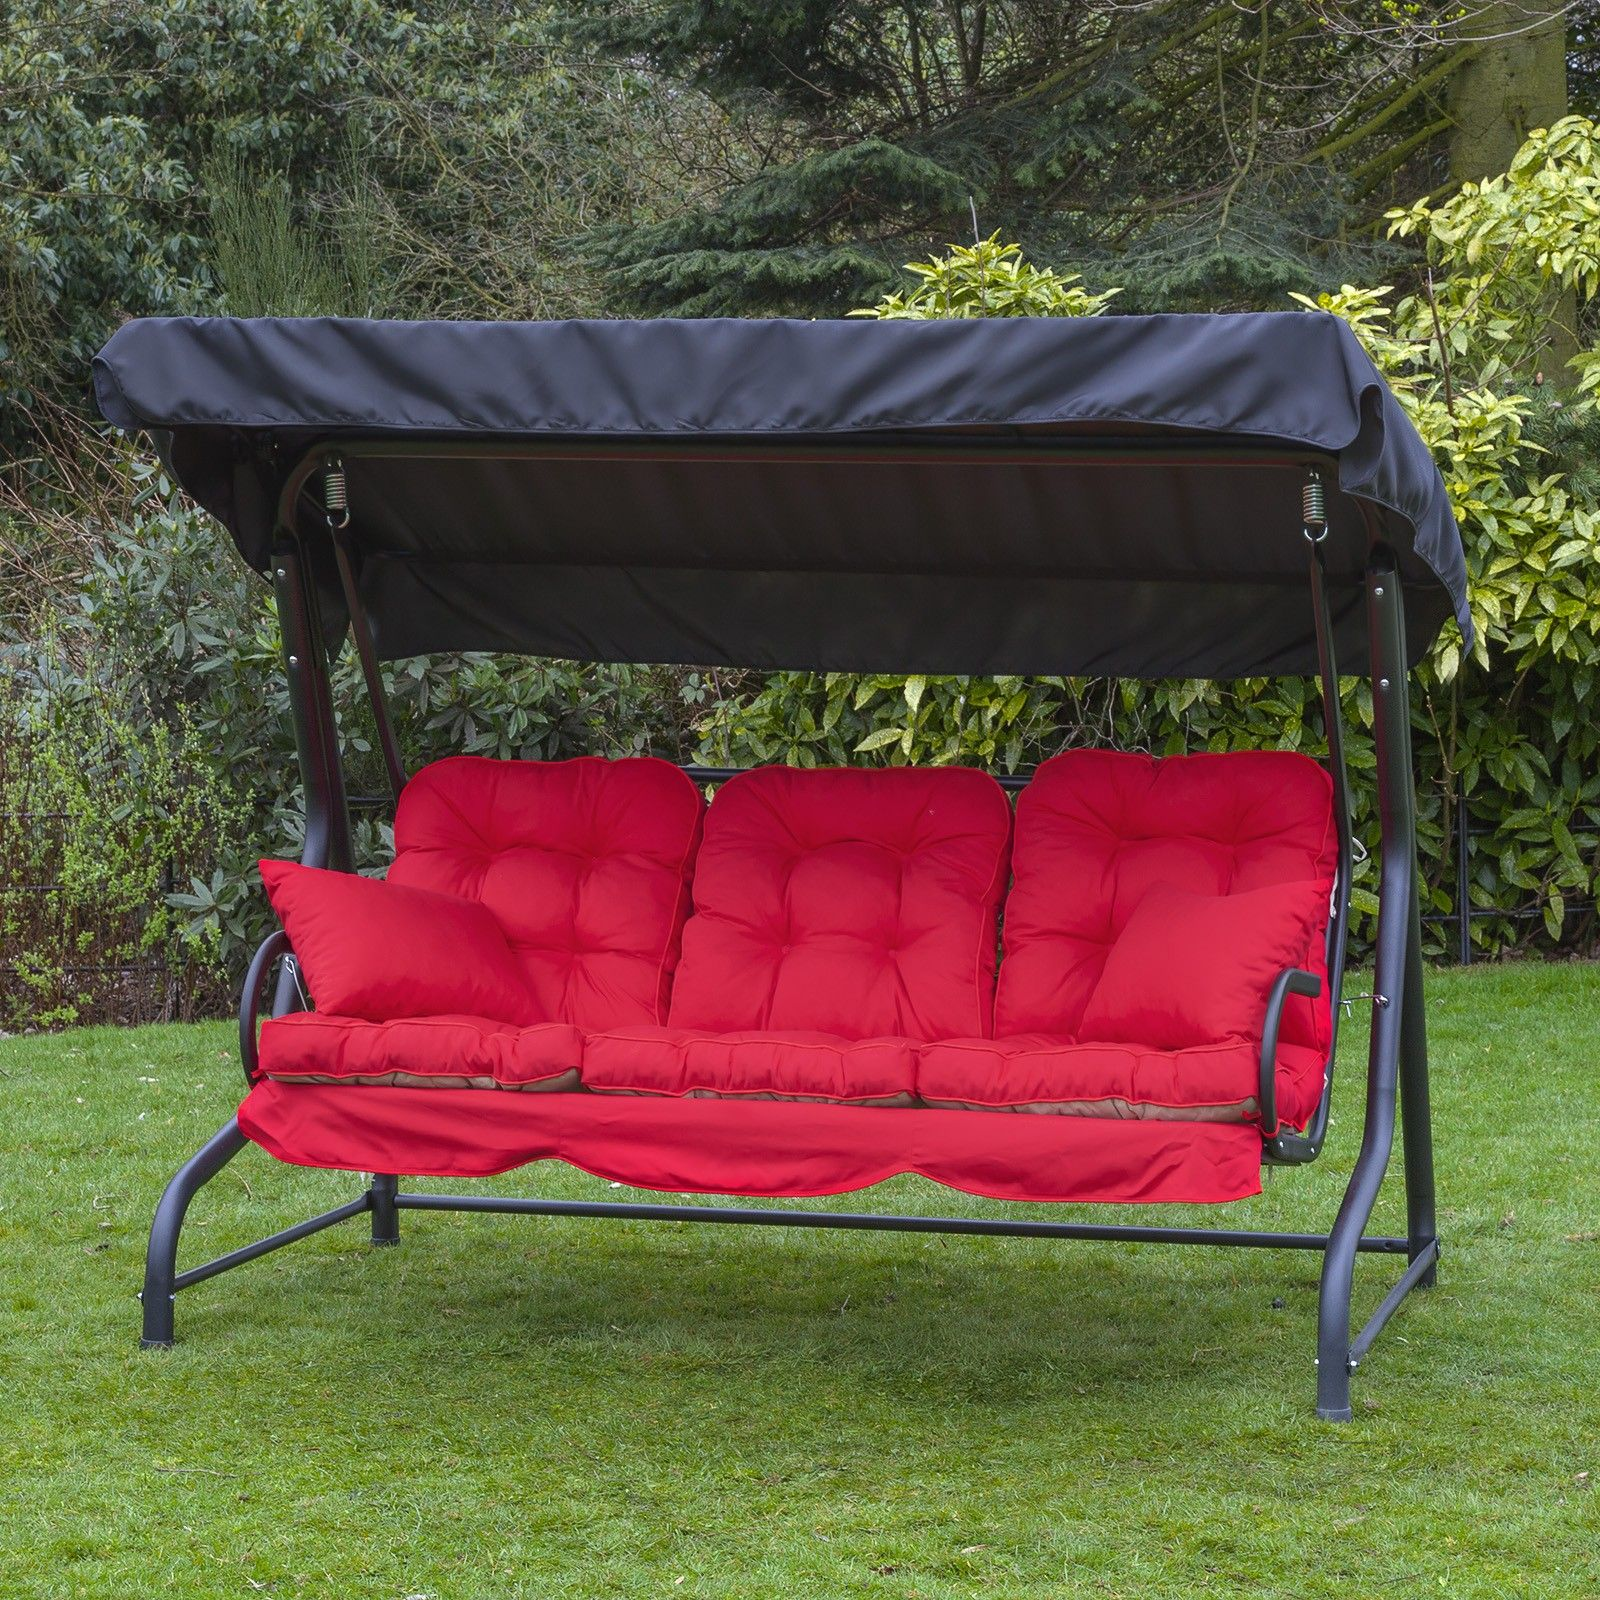 3 seater swing seat with luxury cushions black frame